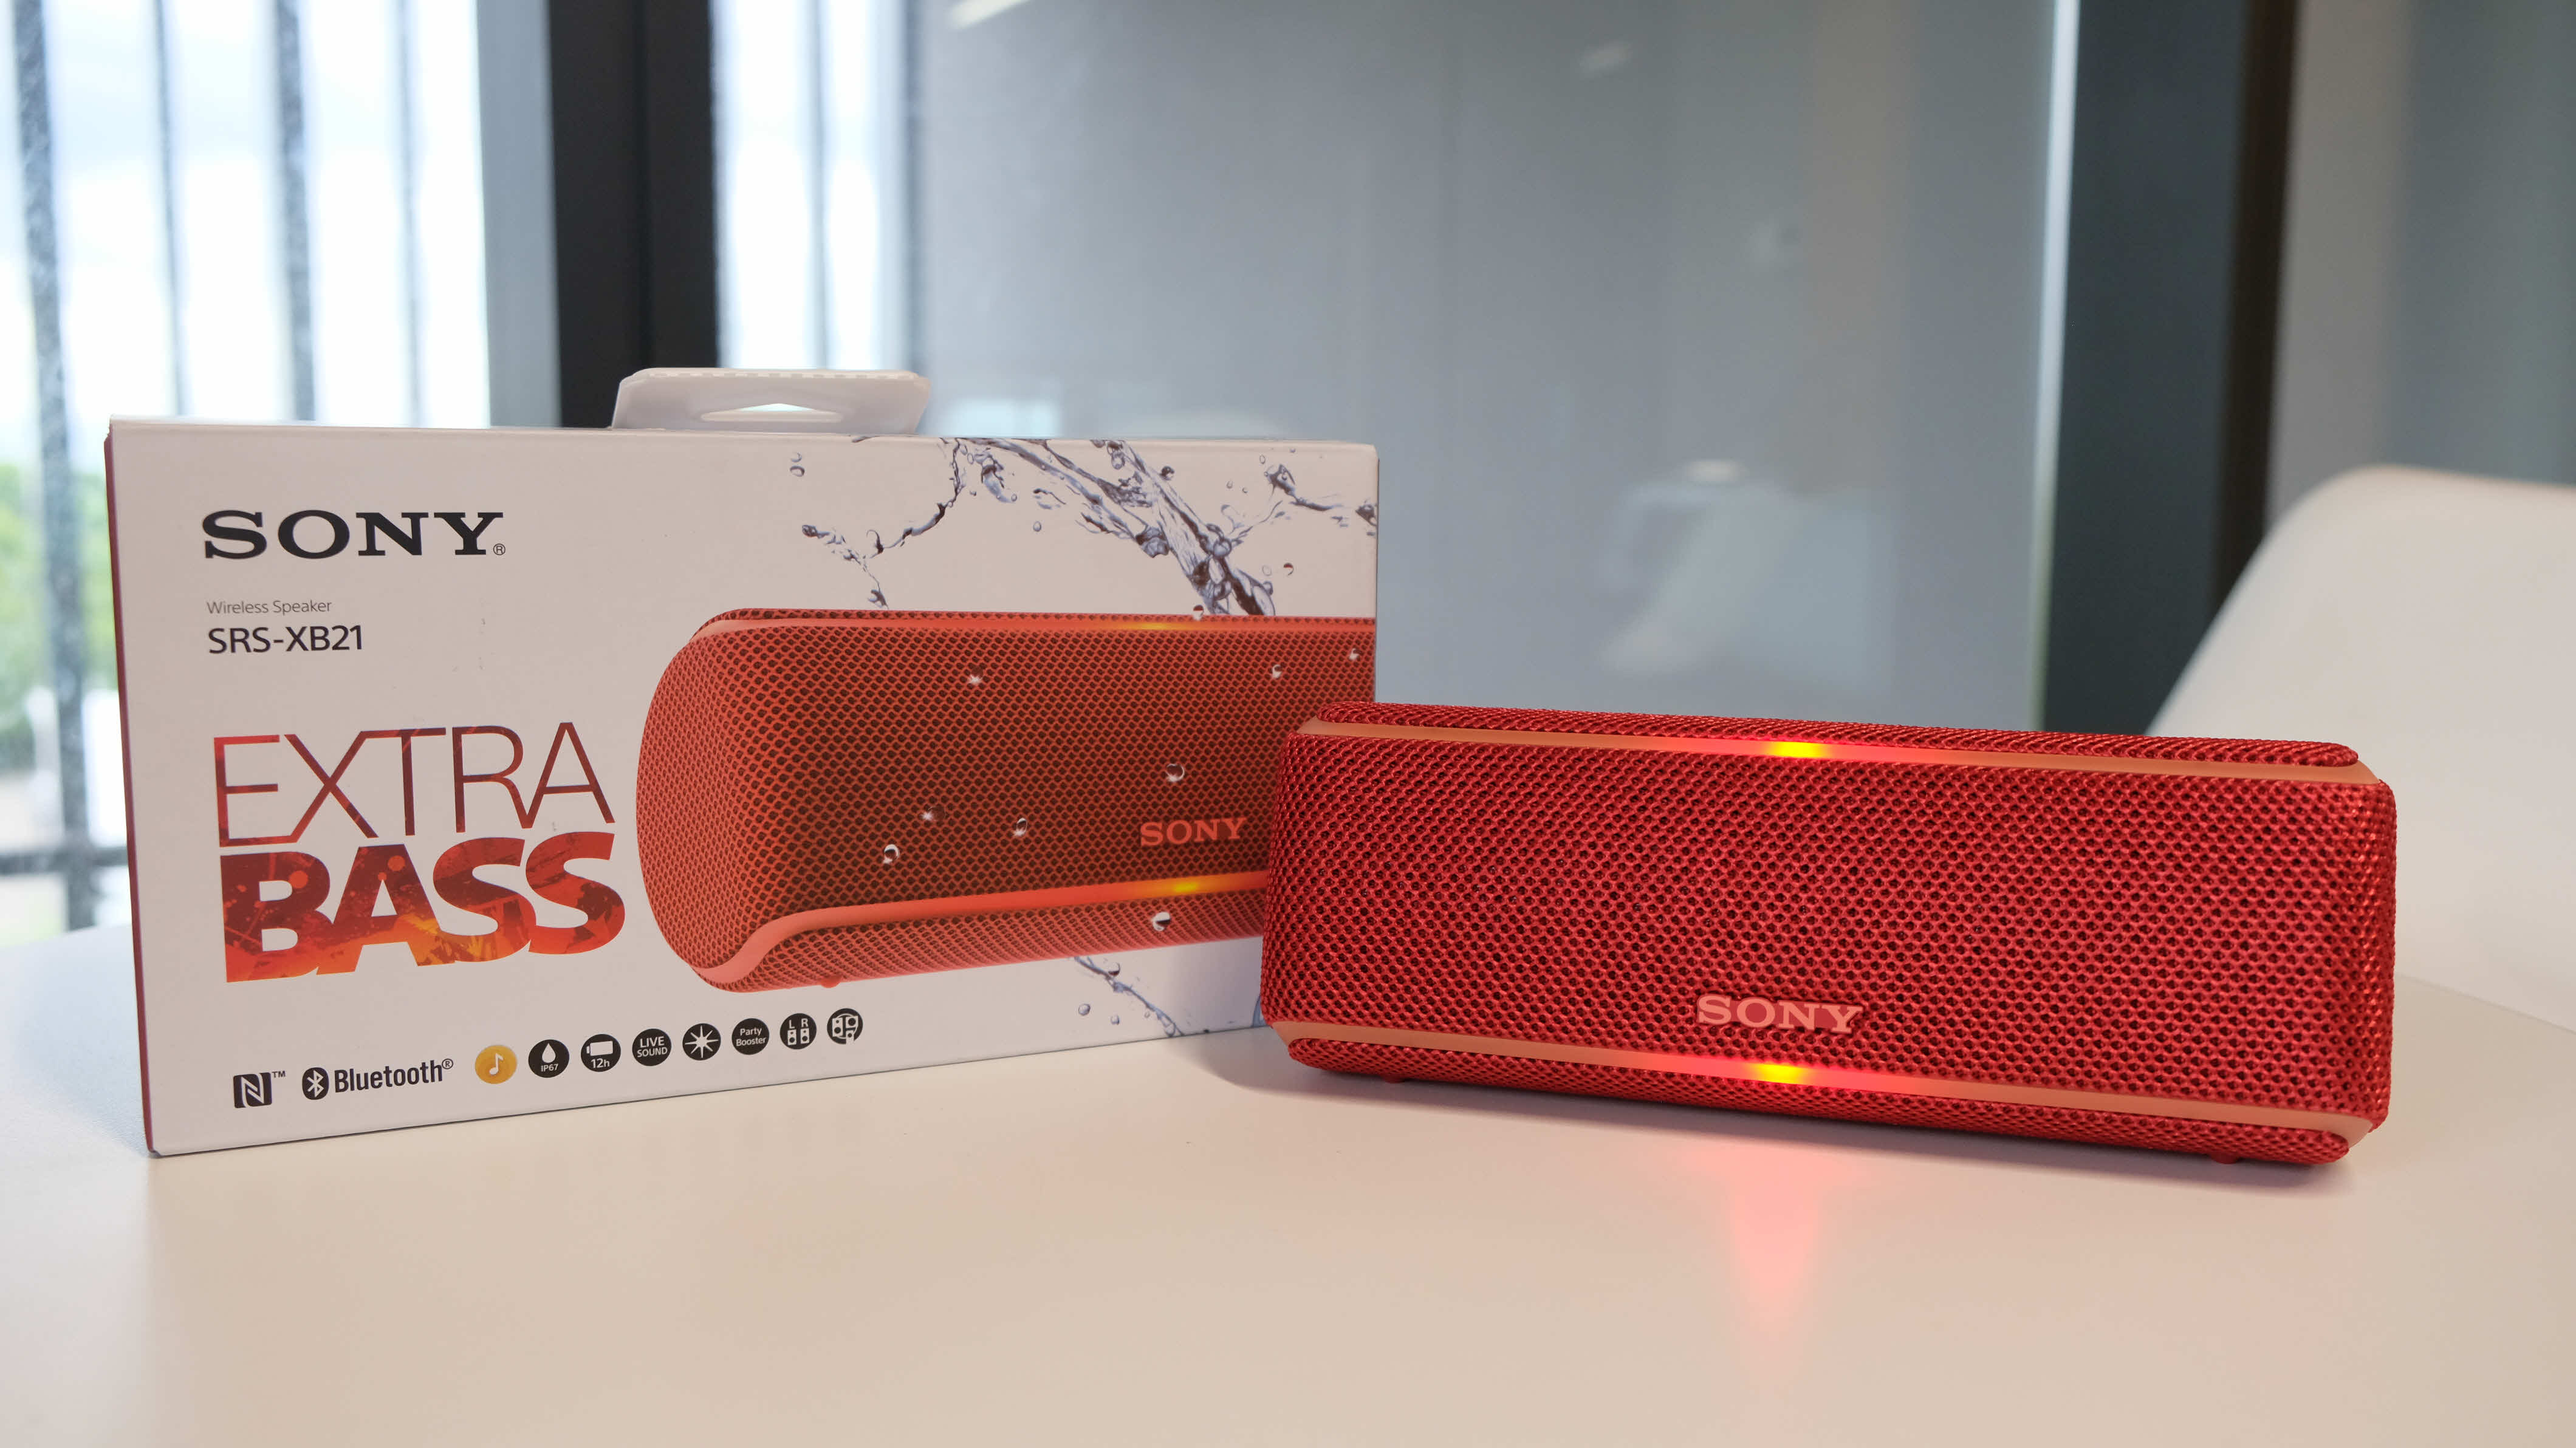 Sony Srs Xb21 Sony Srs Xb31 Blutooth Speaker Review Advertorial 013